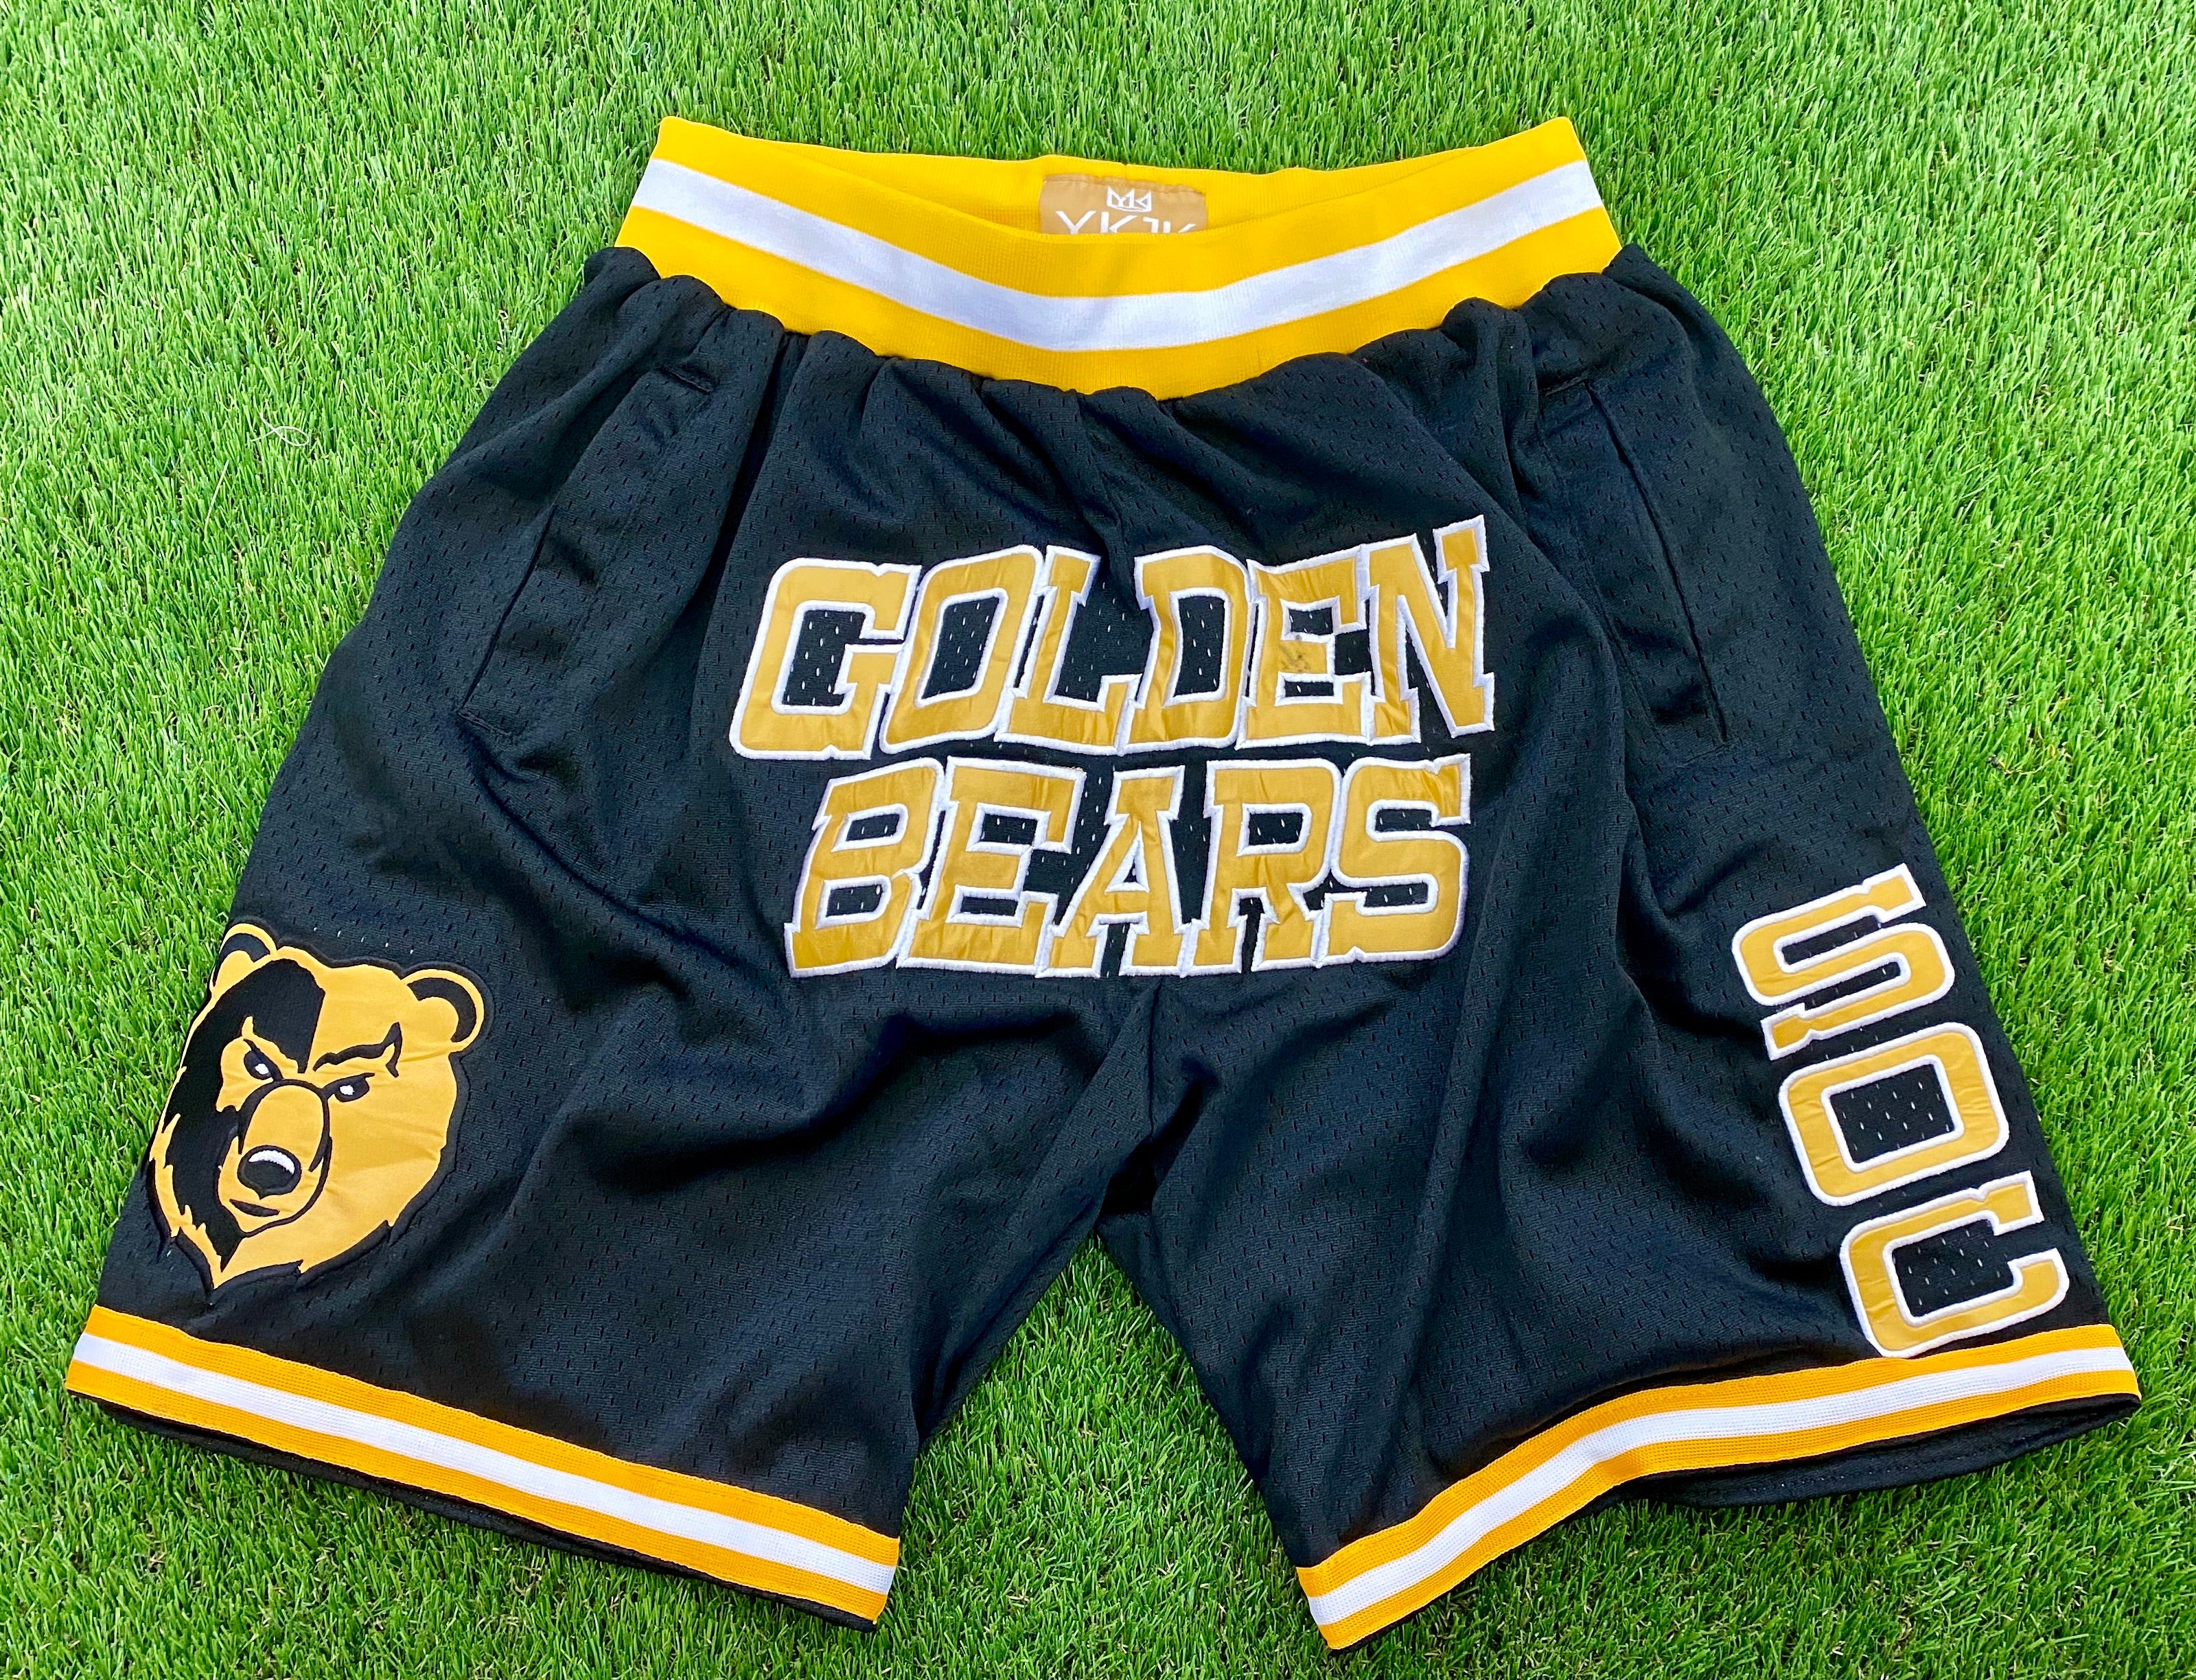 SOUTH OAK CLIFF BASKETBALL SHORTS BLACK